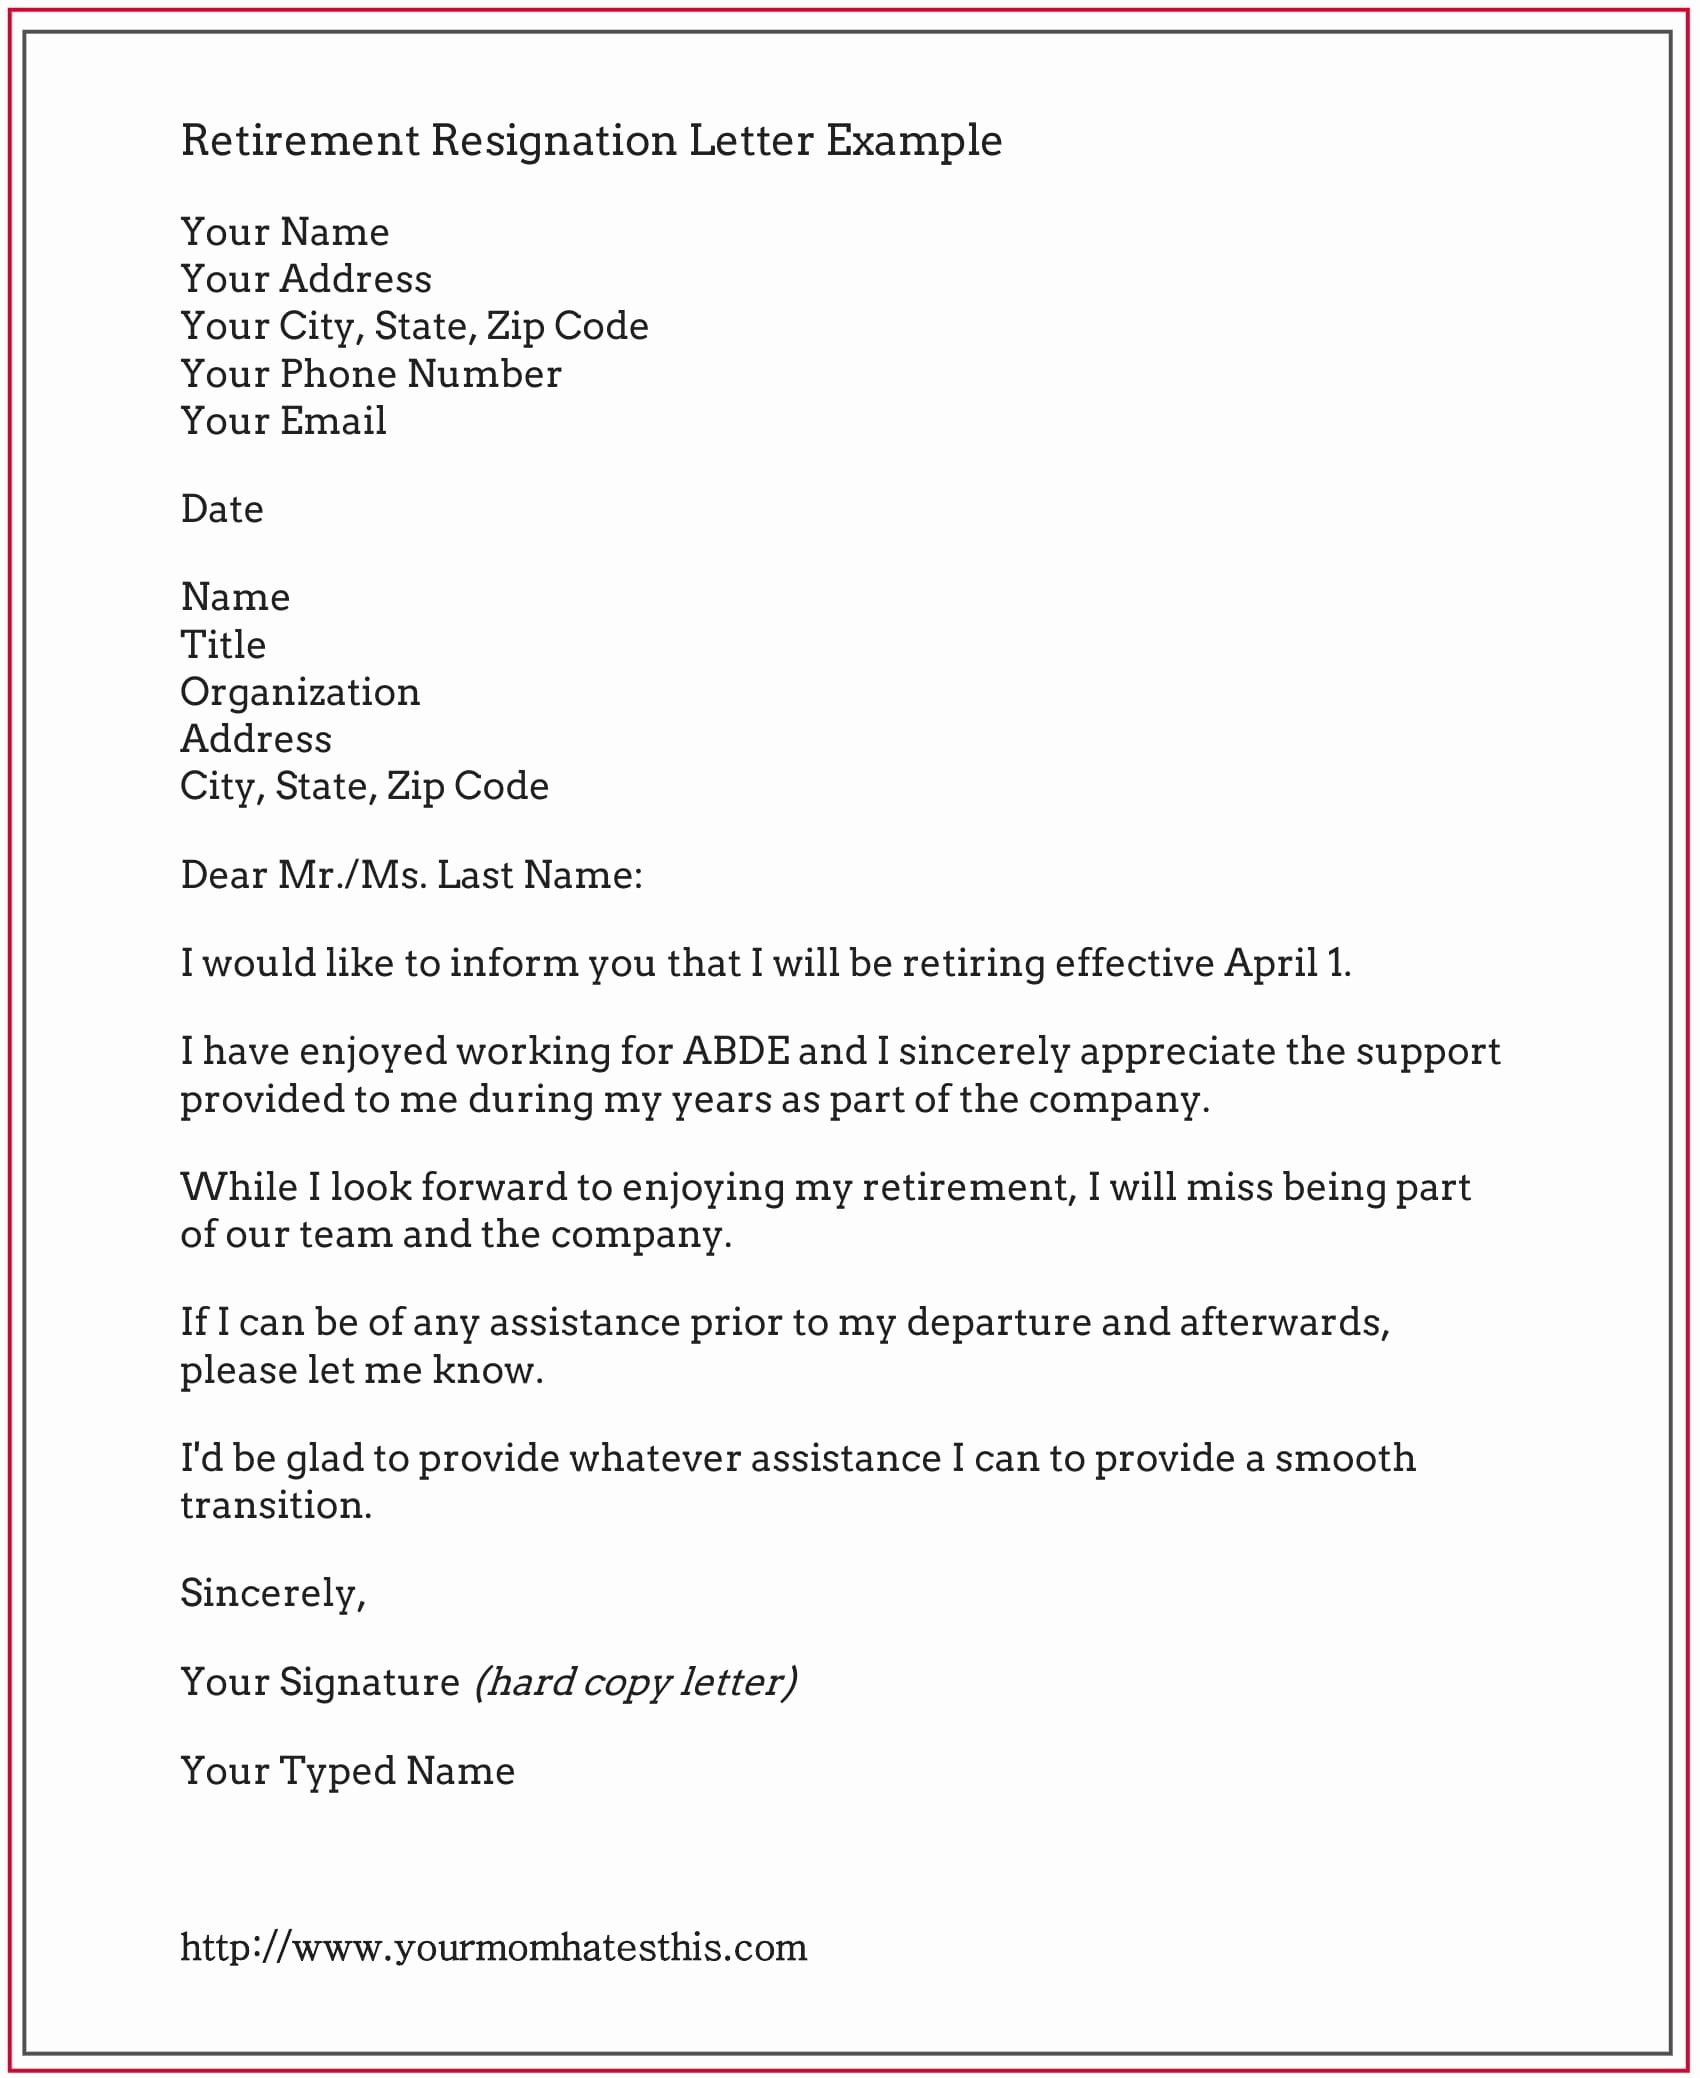 Letter Of Resignation Retirement Example Best Of Dos and Don'ts for A Resignation Letter